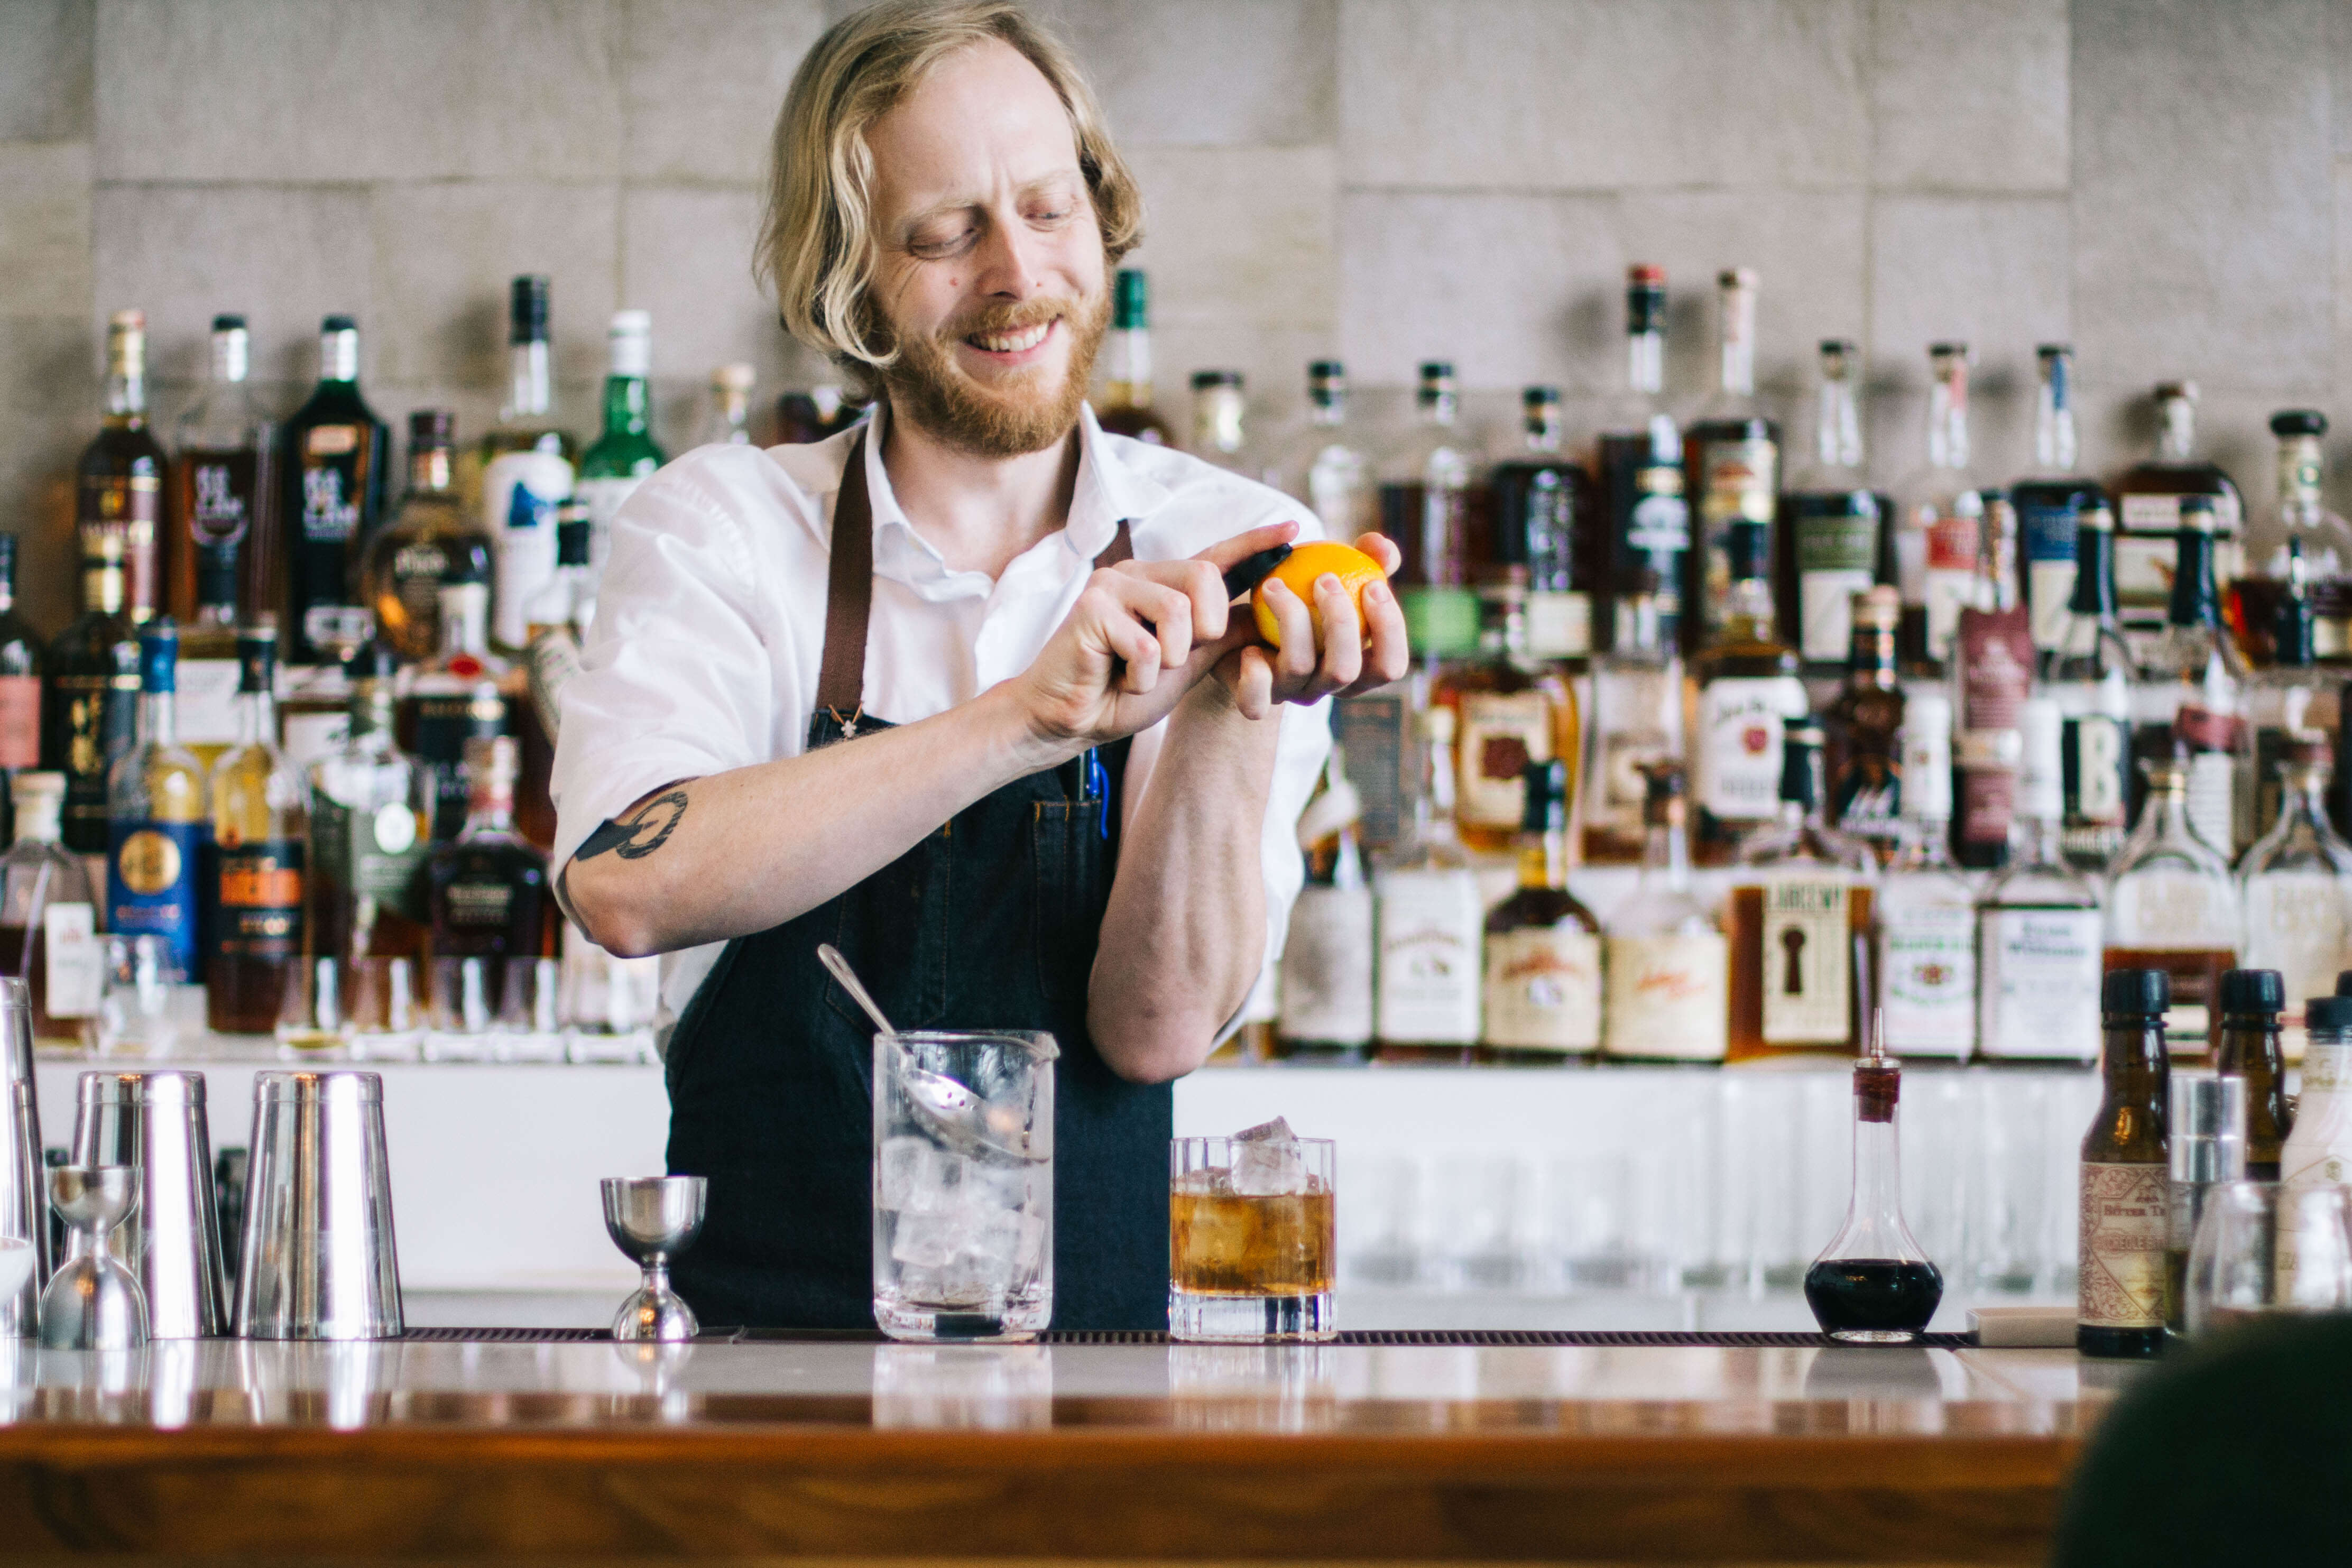 Bartending making a bourbon craft cocktail